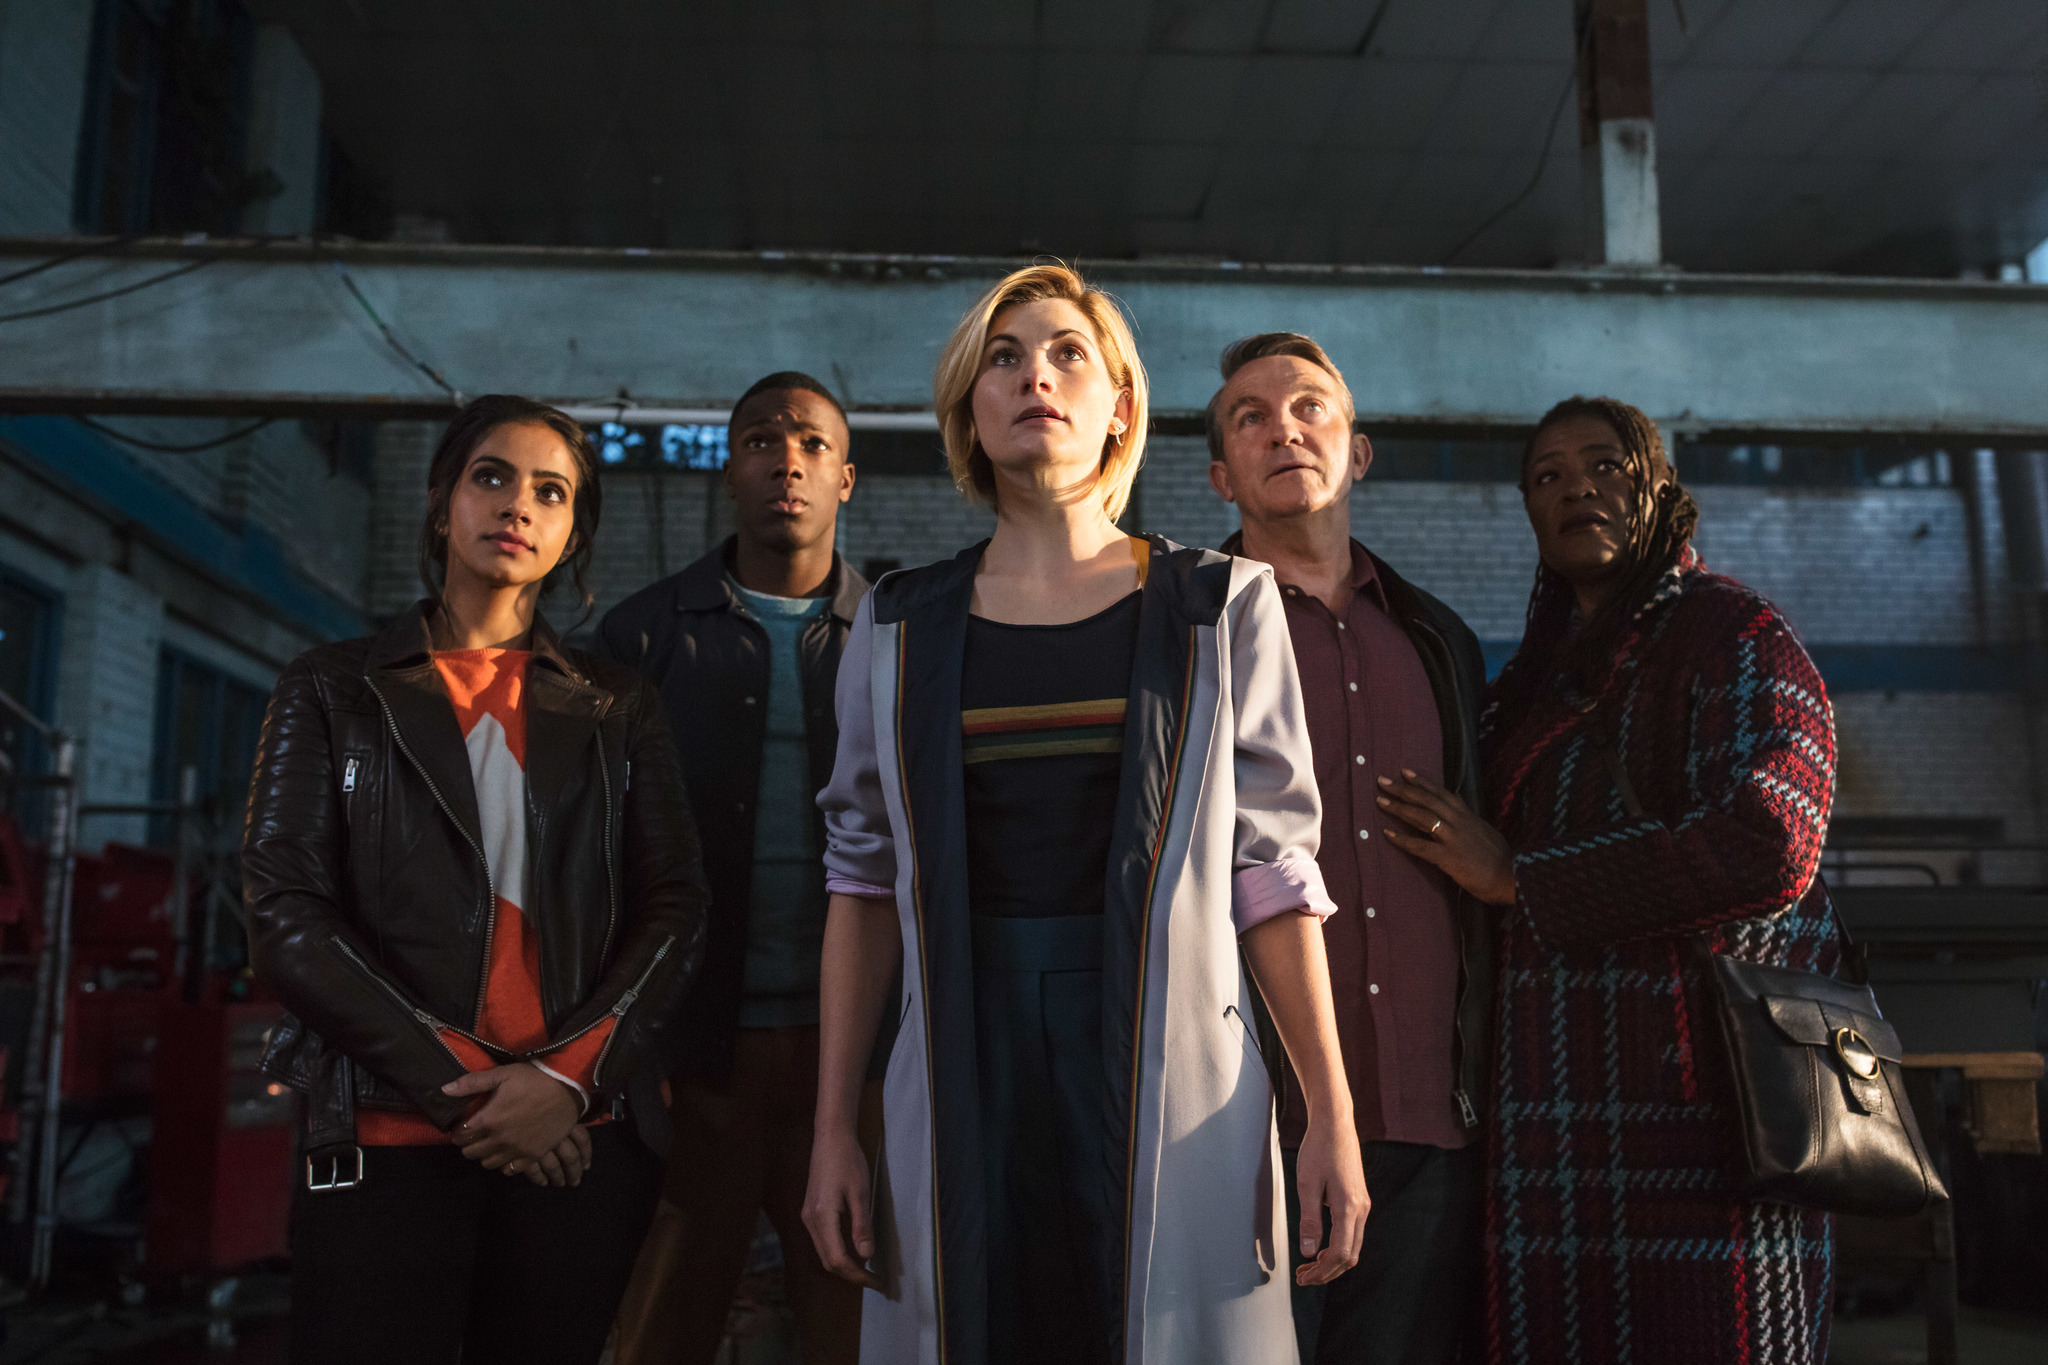 Sharon D. Clarke, Bradley Walsh, Jodie Whittaker, Tosin Cole, and Mandip Gill in Doctor Who (2005)